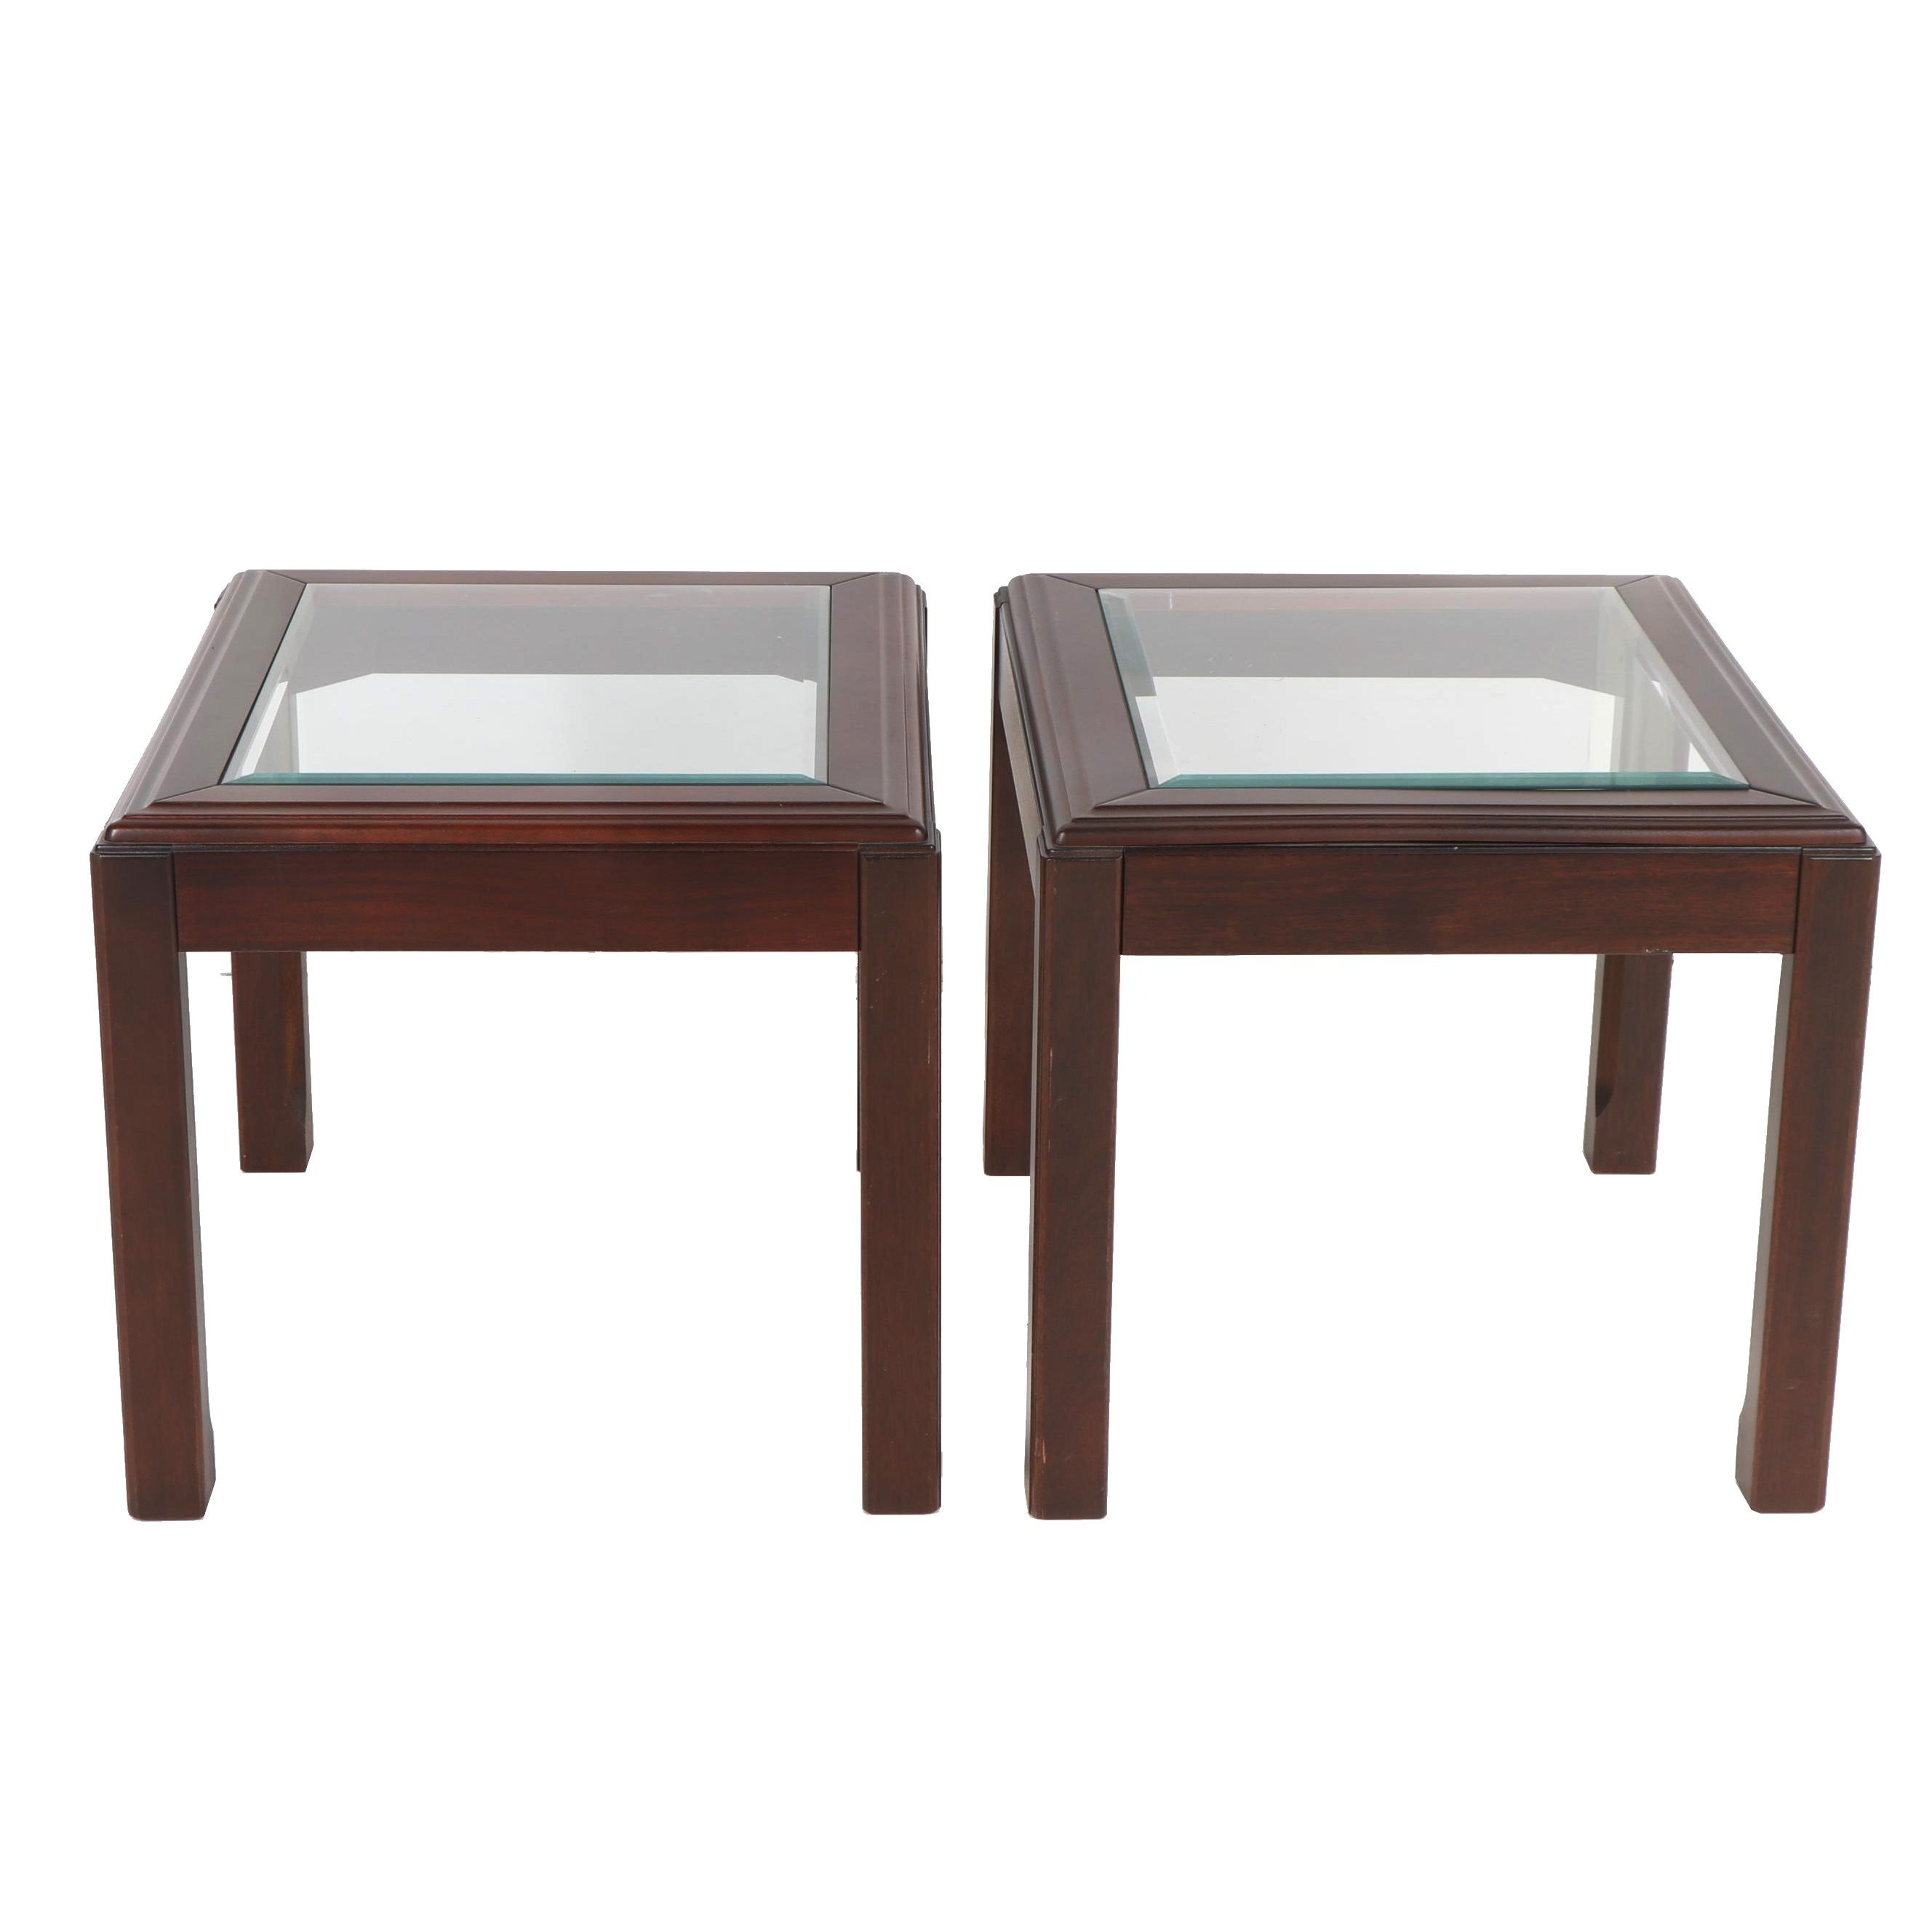 Stained Poplar and Glass Parsons Style End Tables, 21st Century